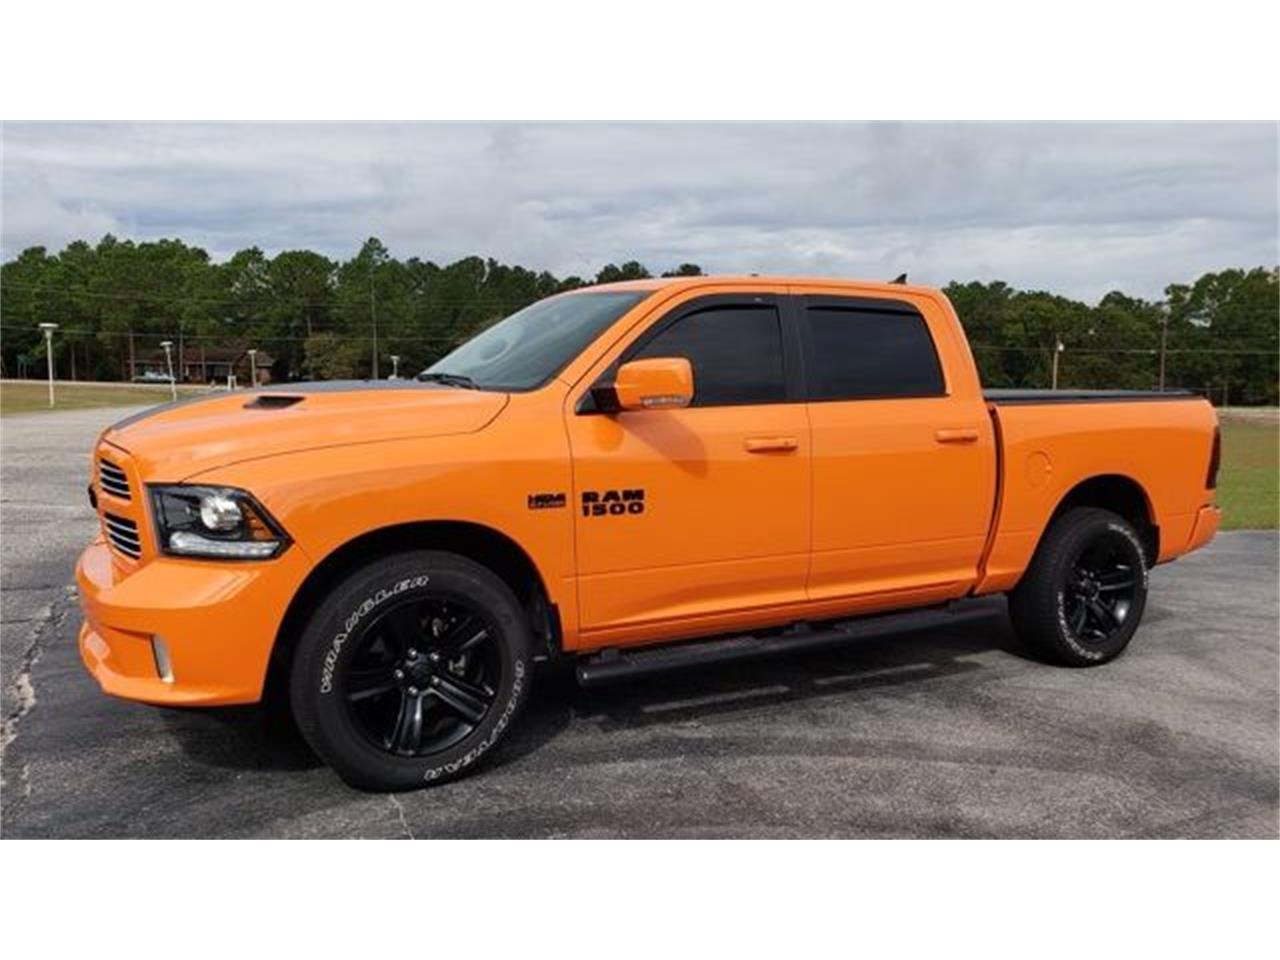 2017 Dodge Ram >> 2017 Dodge Ram 1500 For Sale Classiccars Com Cc 1154467